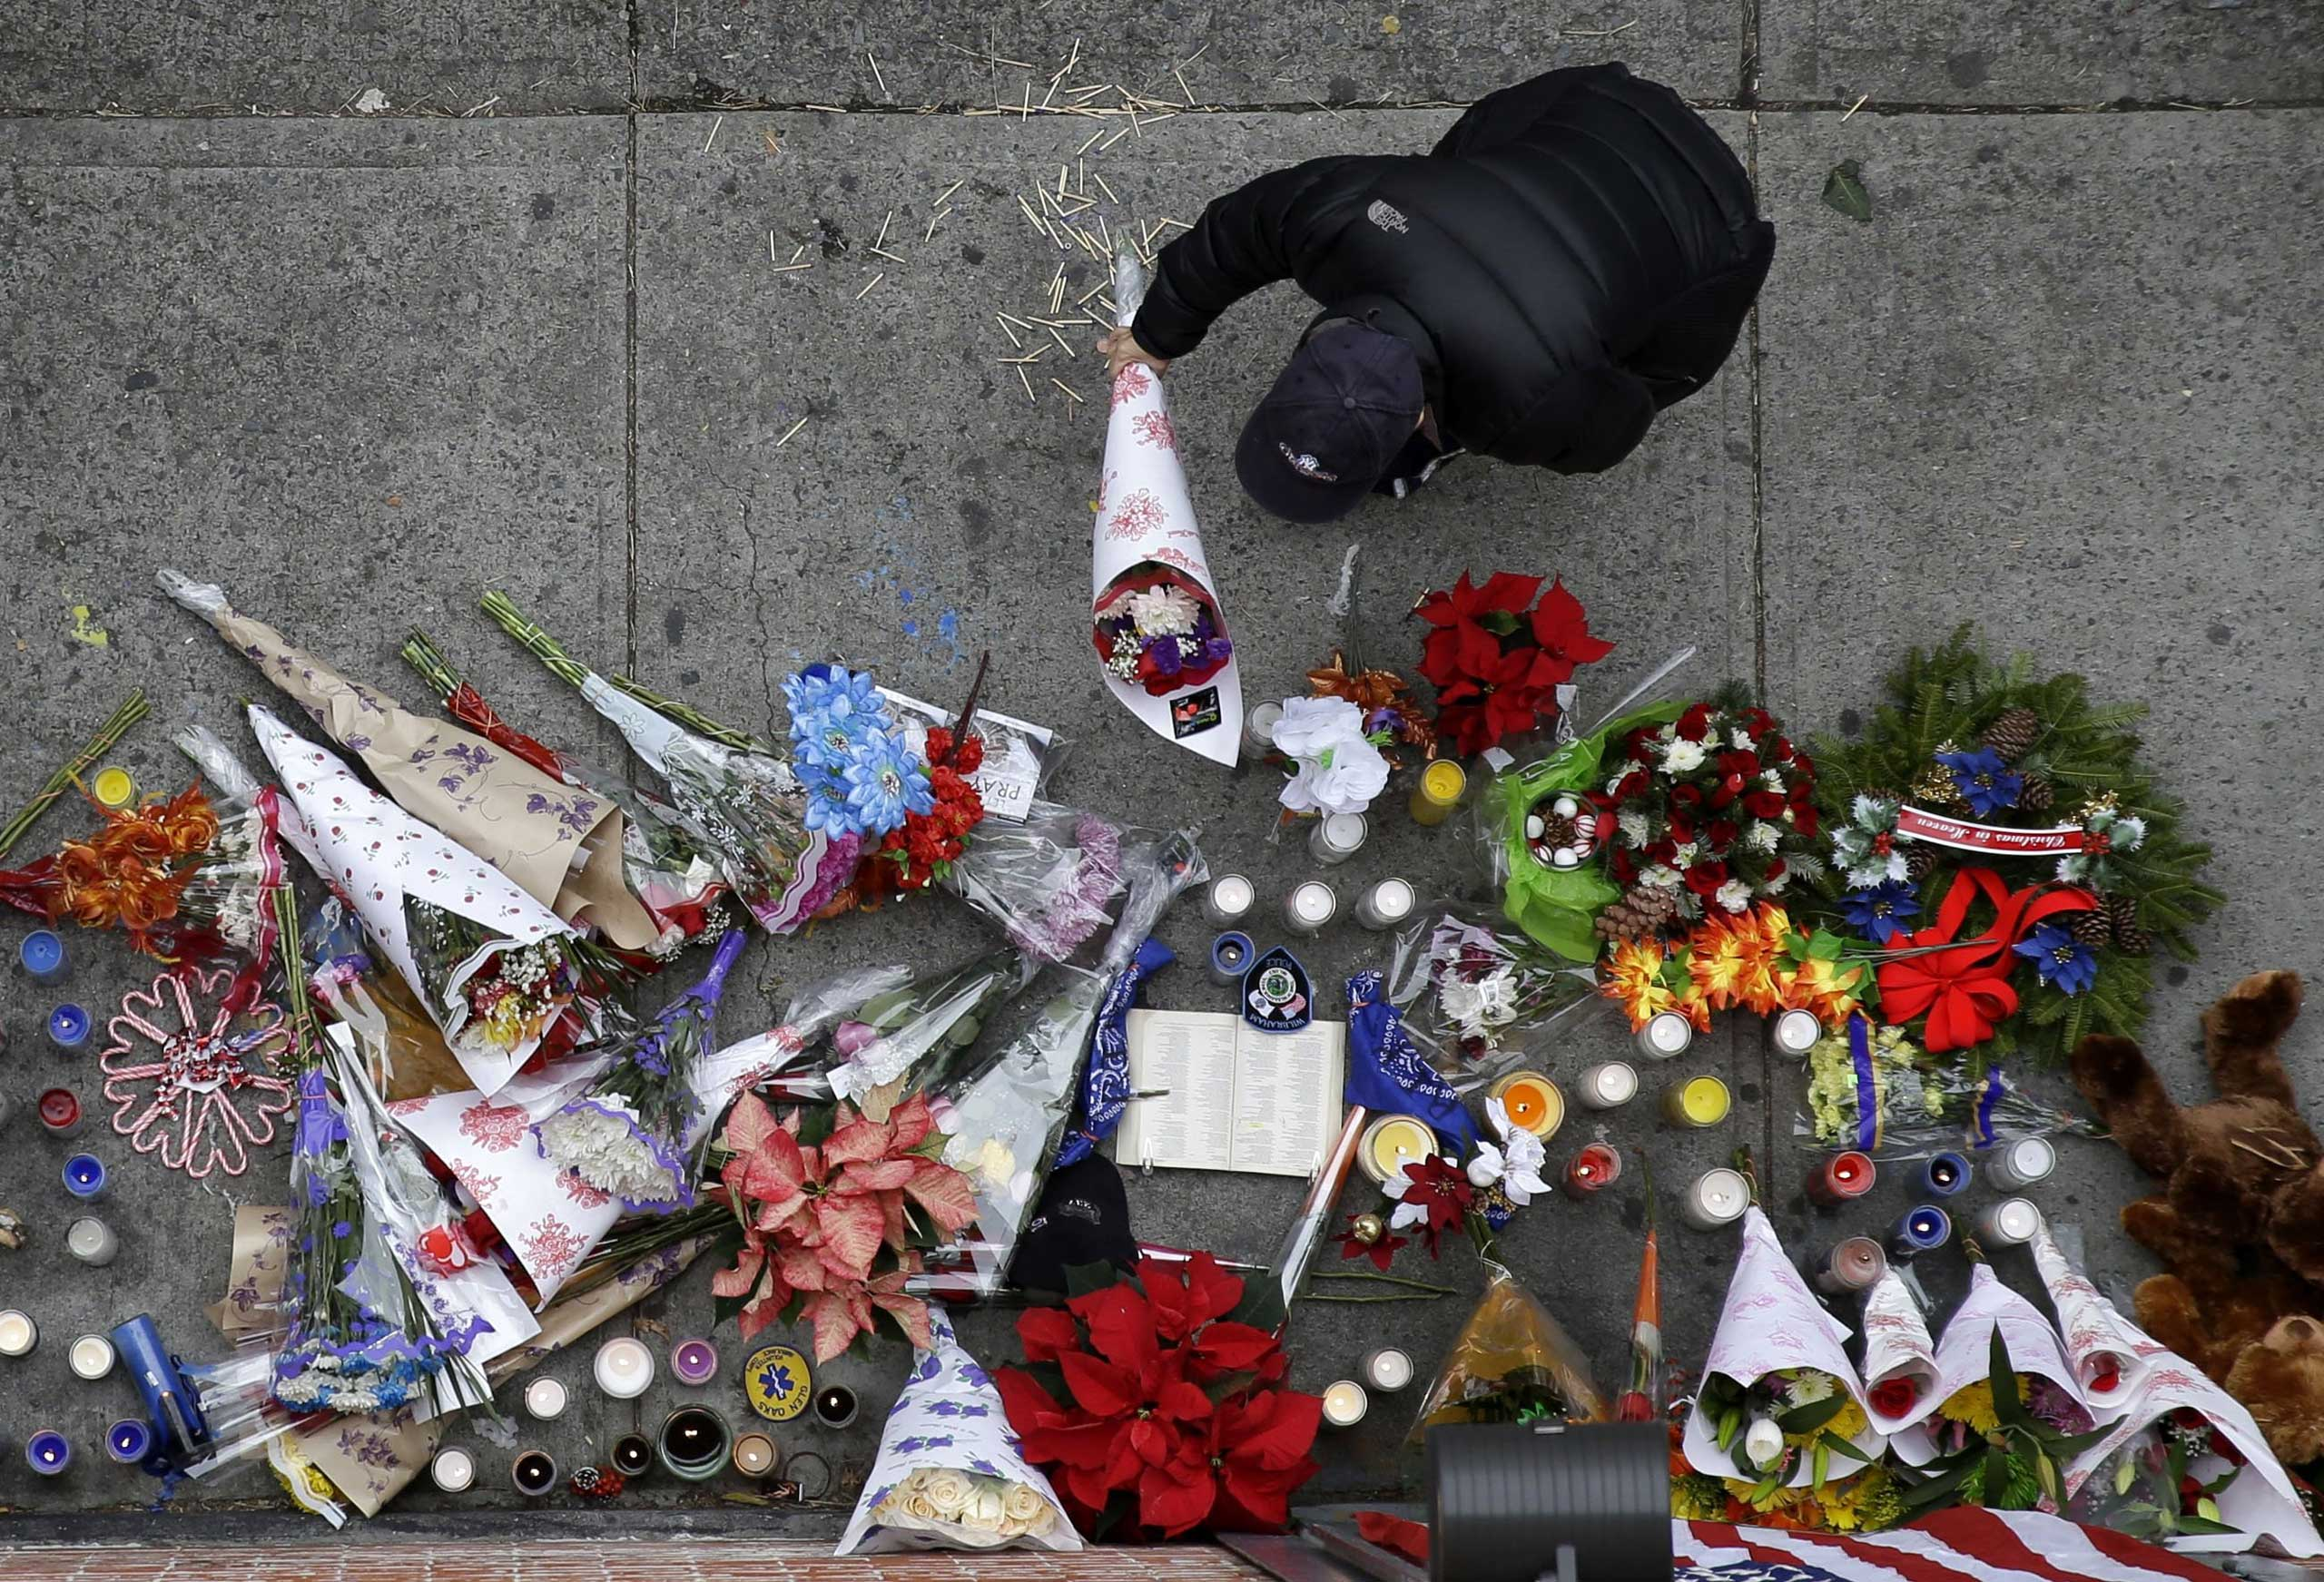 A man leaves flowers at an impromptu memorial near the site where two police officers were killed the day before in the Brooklyn borough of New York City on Dec. 21, 2014.